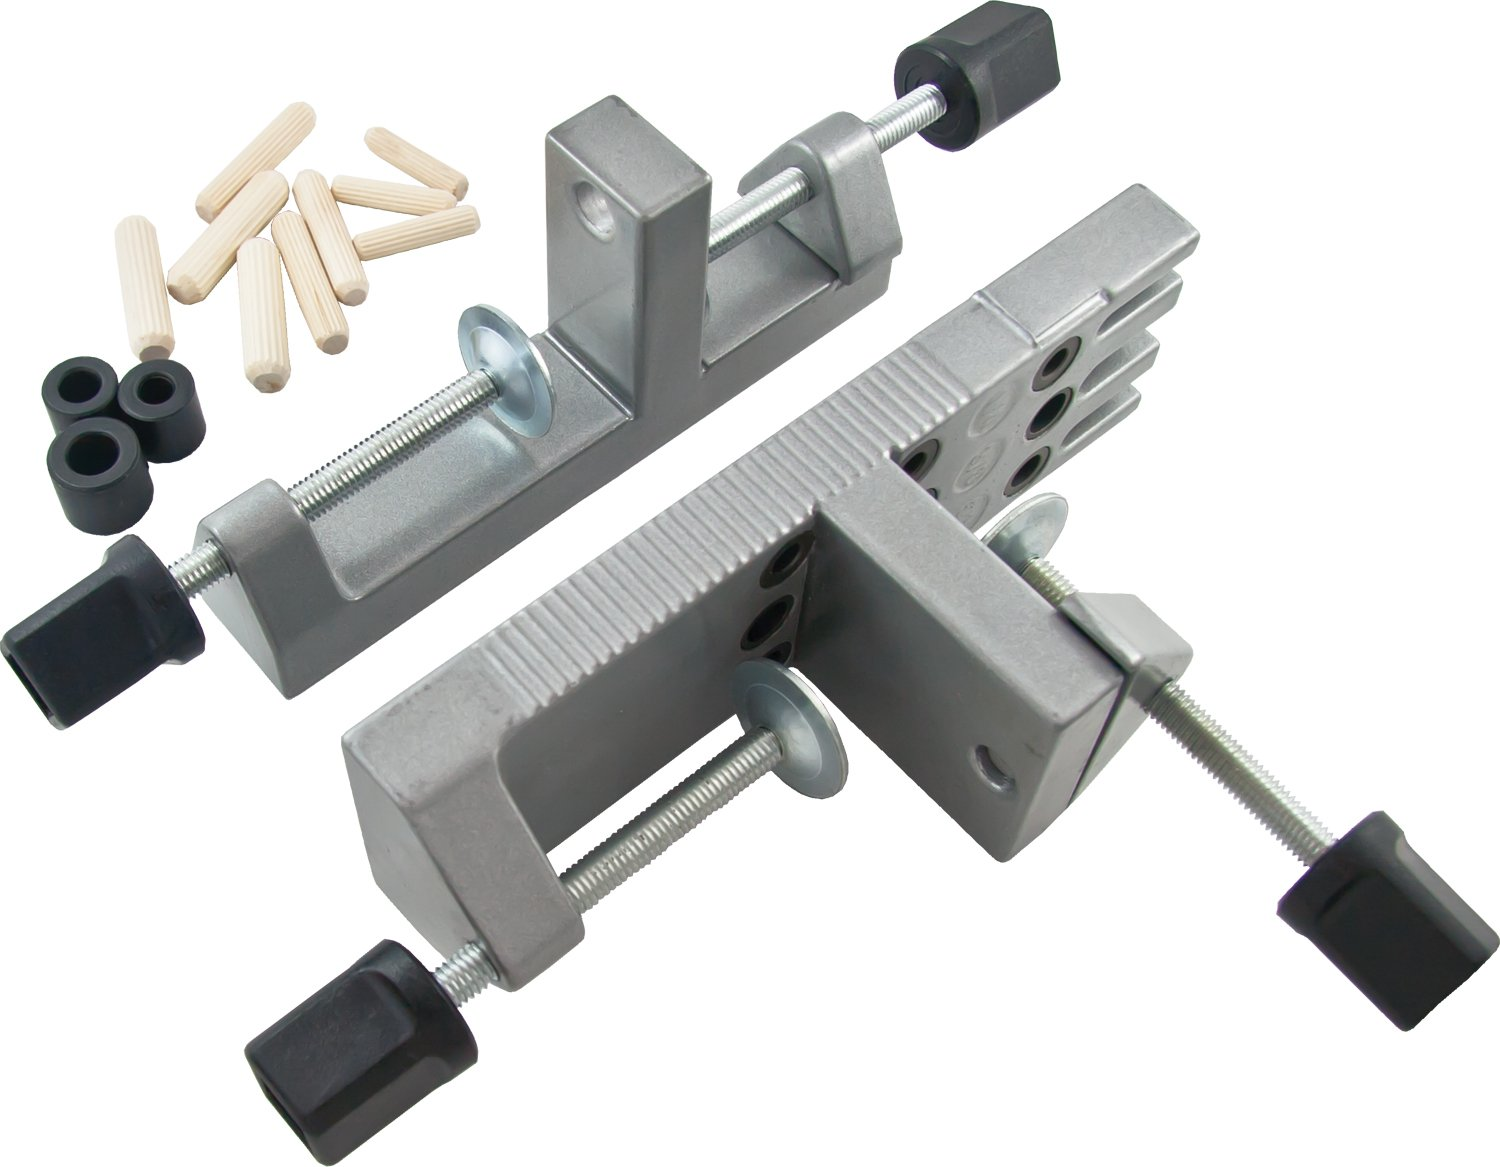 Wolfcraft 3751405 Dowel Pro Doweling Jig Kit Review